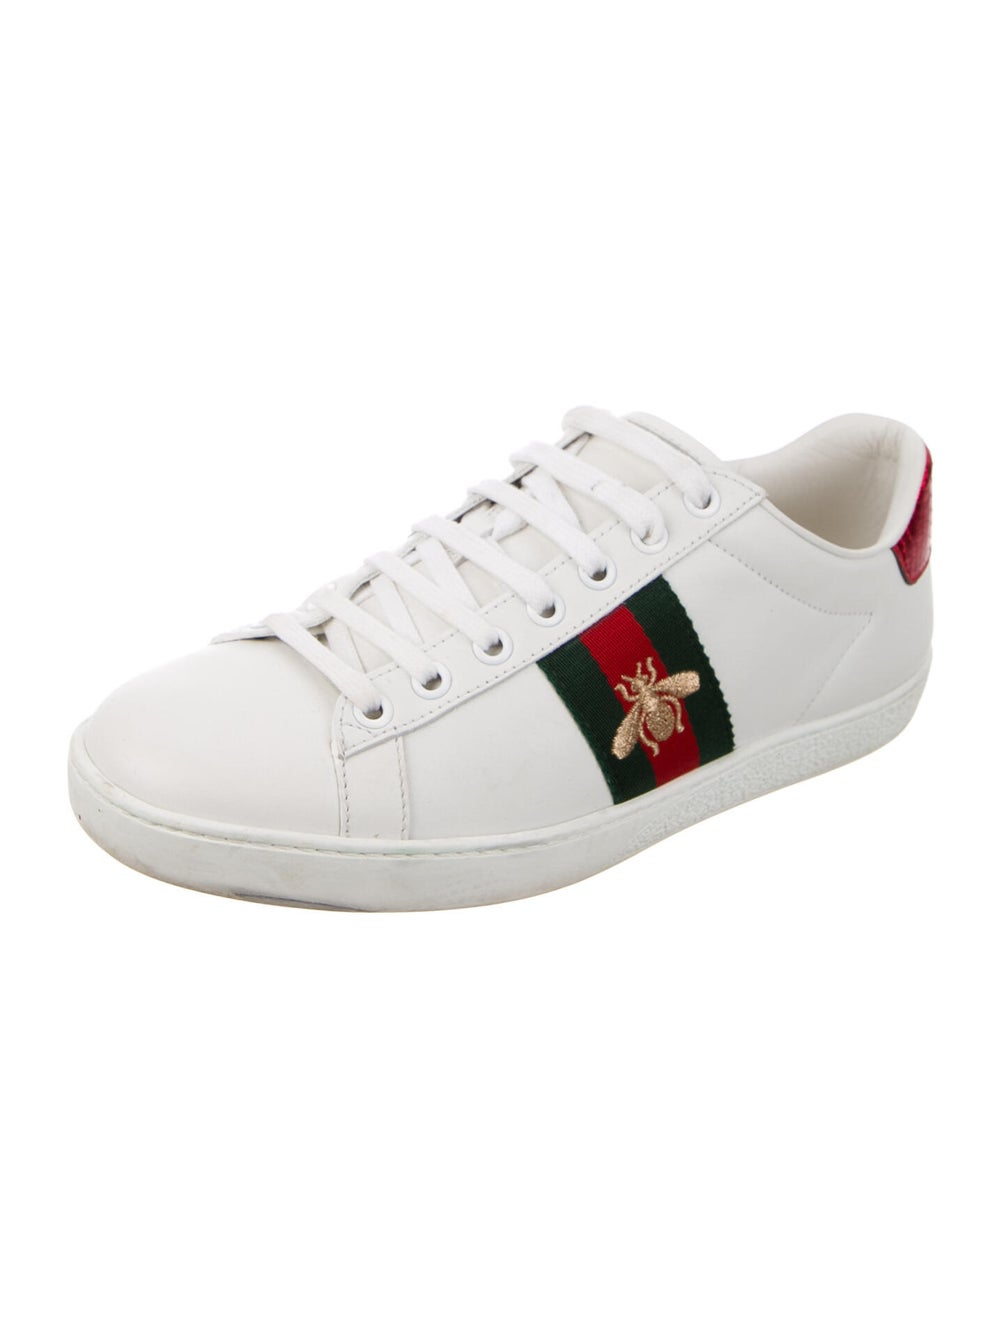 Gucci Leather Sneakers White - image 2